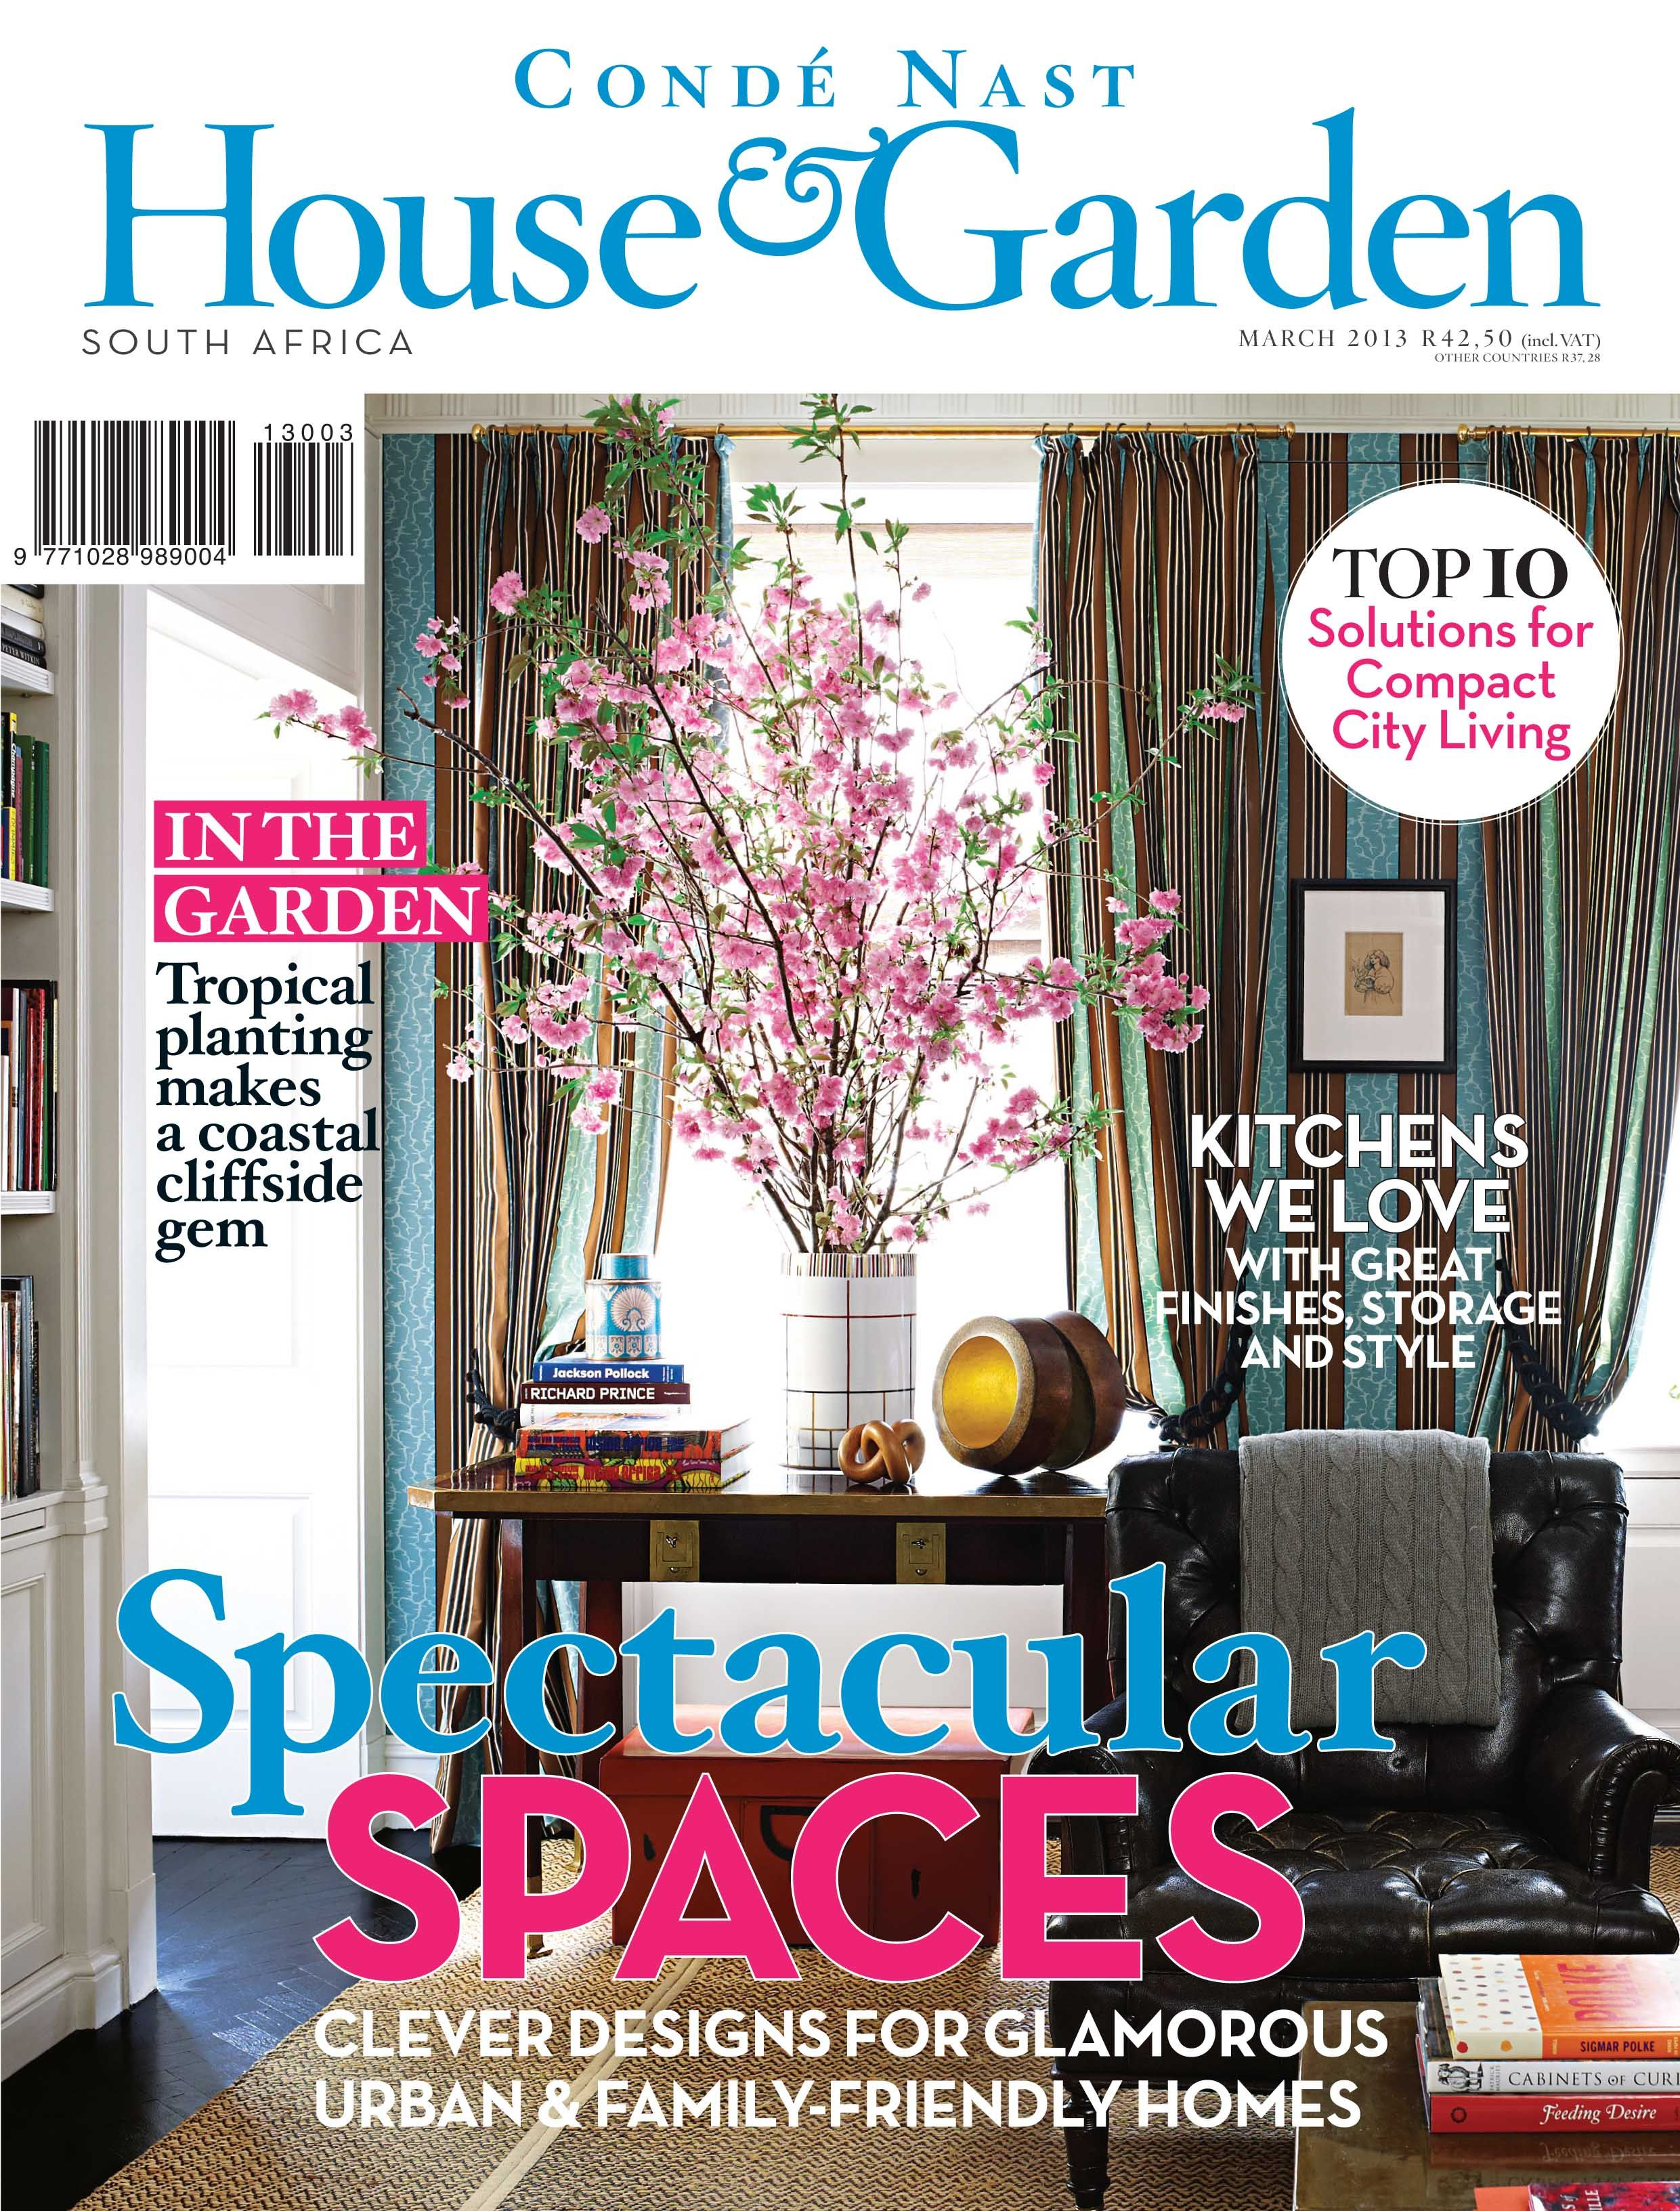 Cond Nast House Garden magazine South Africa March 2013 House